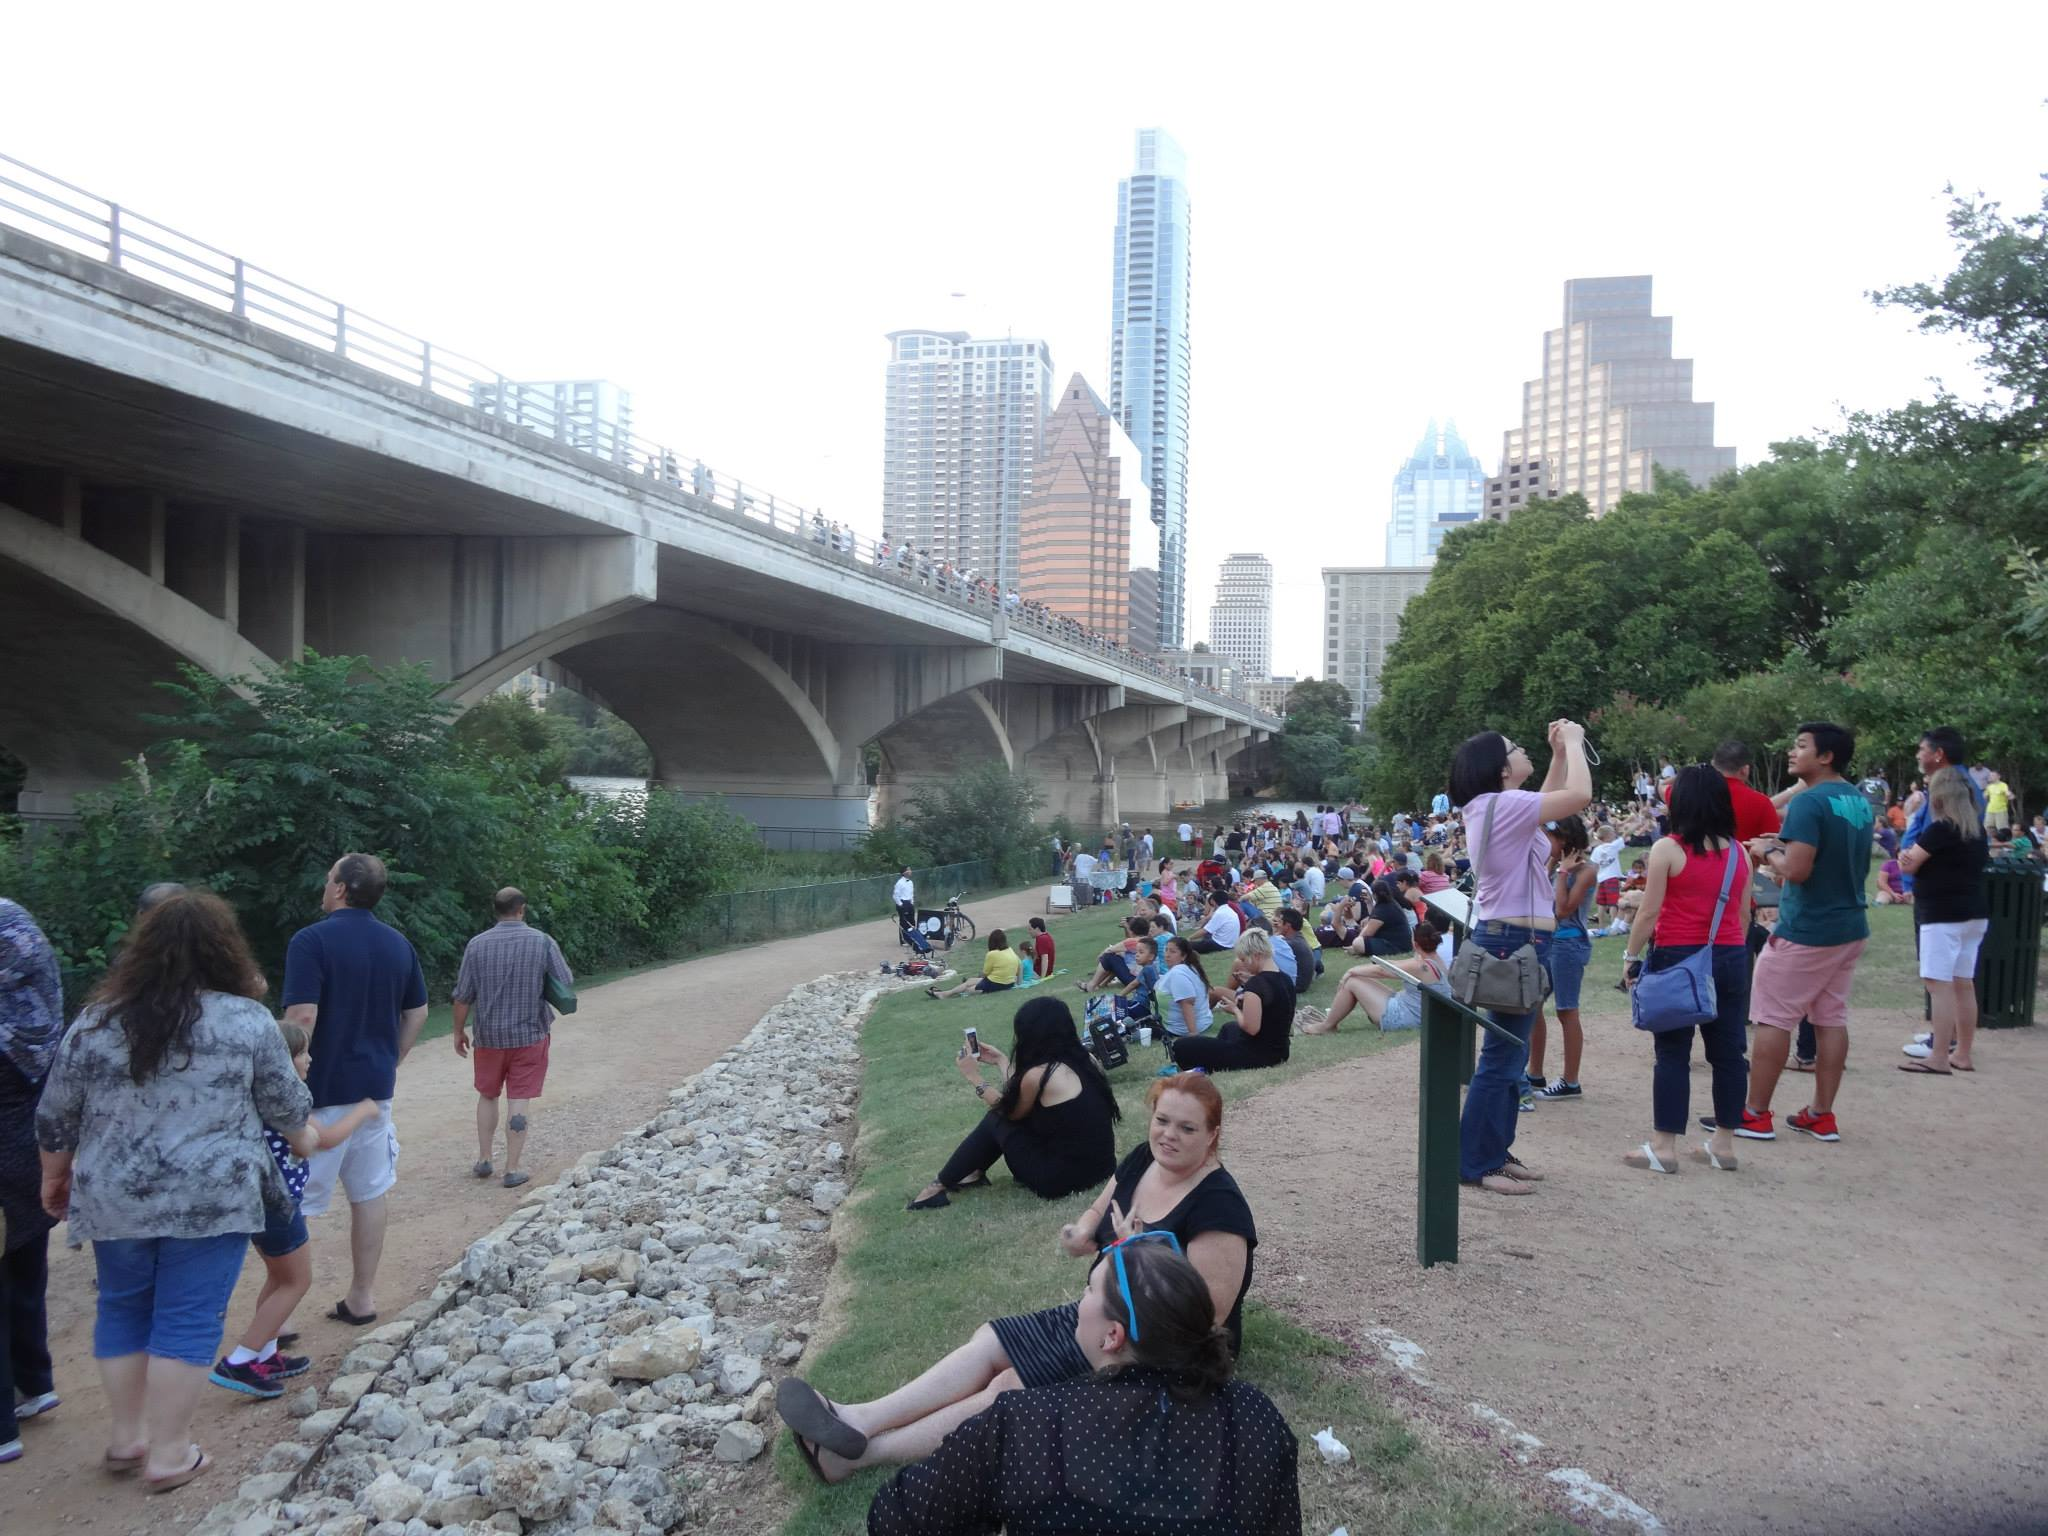 people gathered to watch the bats under the South Congress bridge in Austin Texas